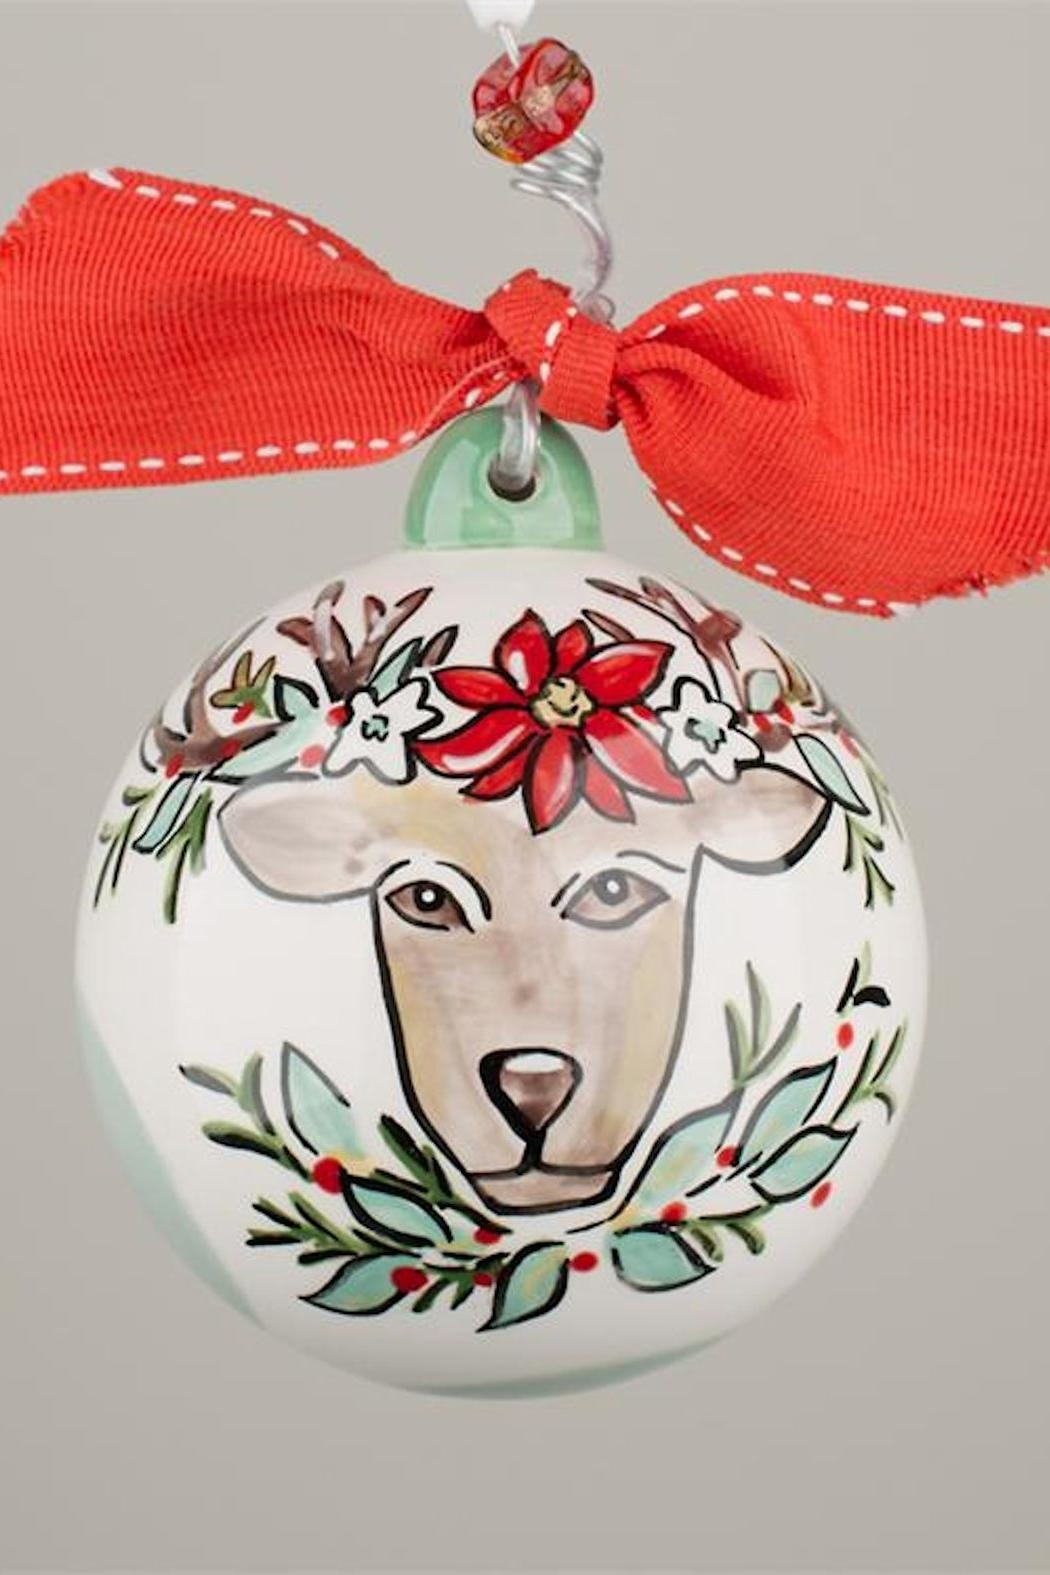 Glory Haus Reindeer Ball Ornament - Main Image